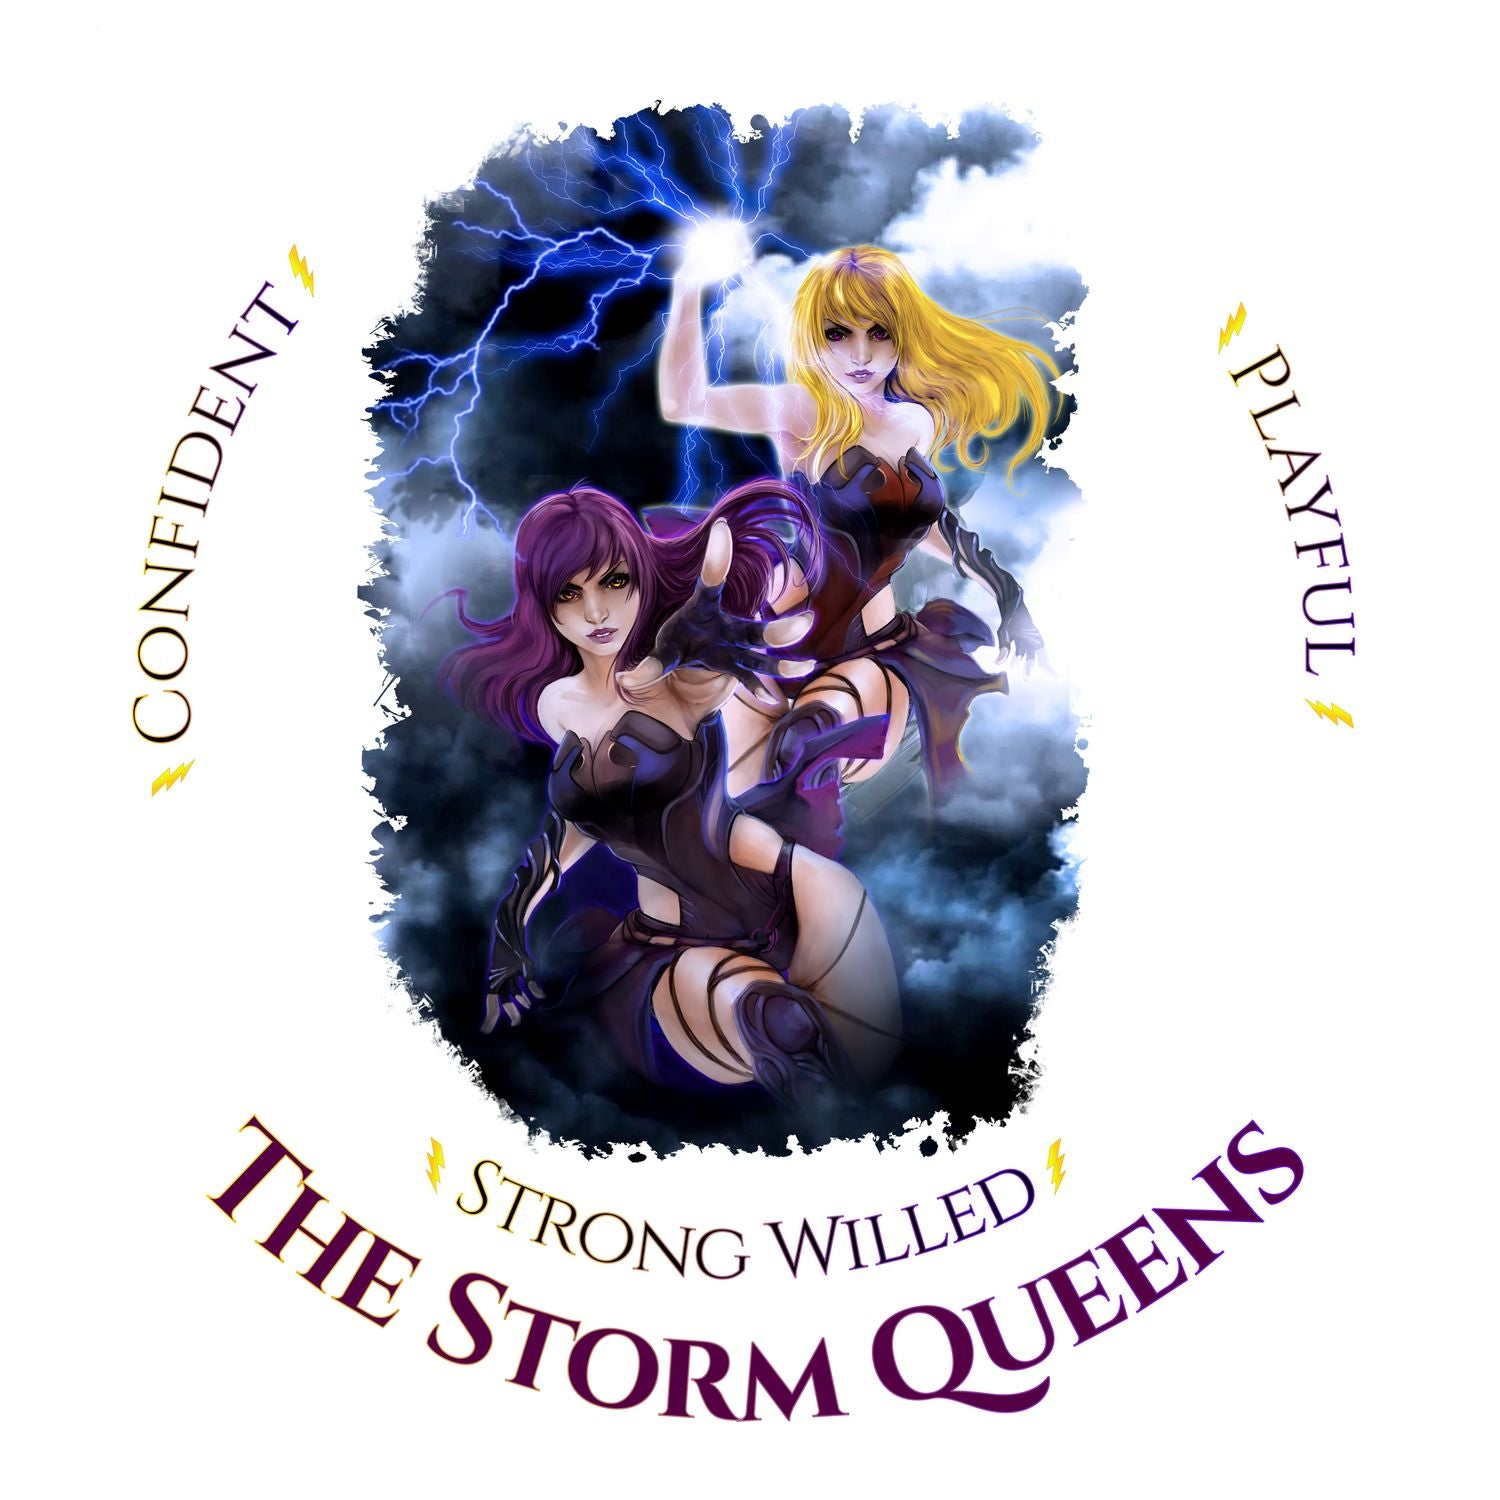 Naturally Wicked Storm Queens Surrounded By Lightning & Text - Confident, Playful & Strong Willed